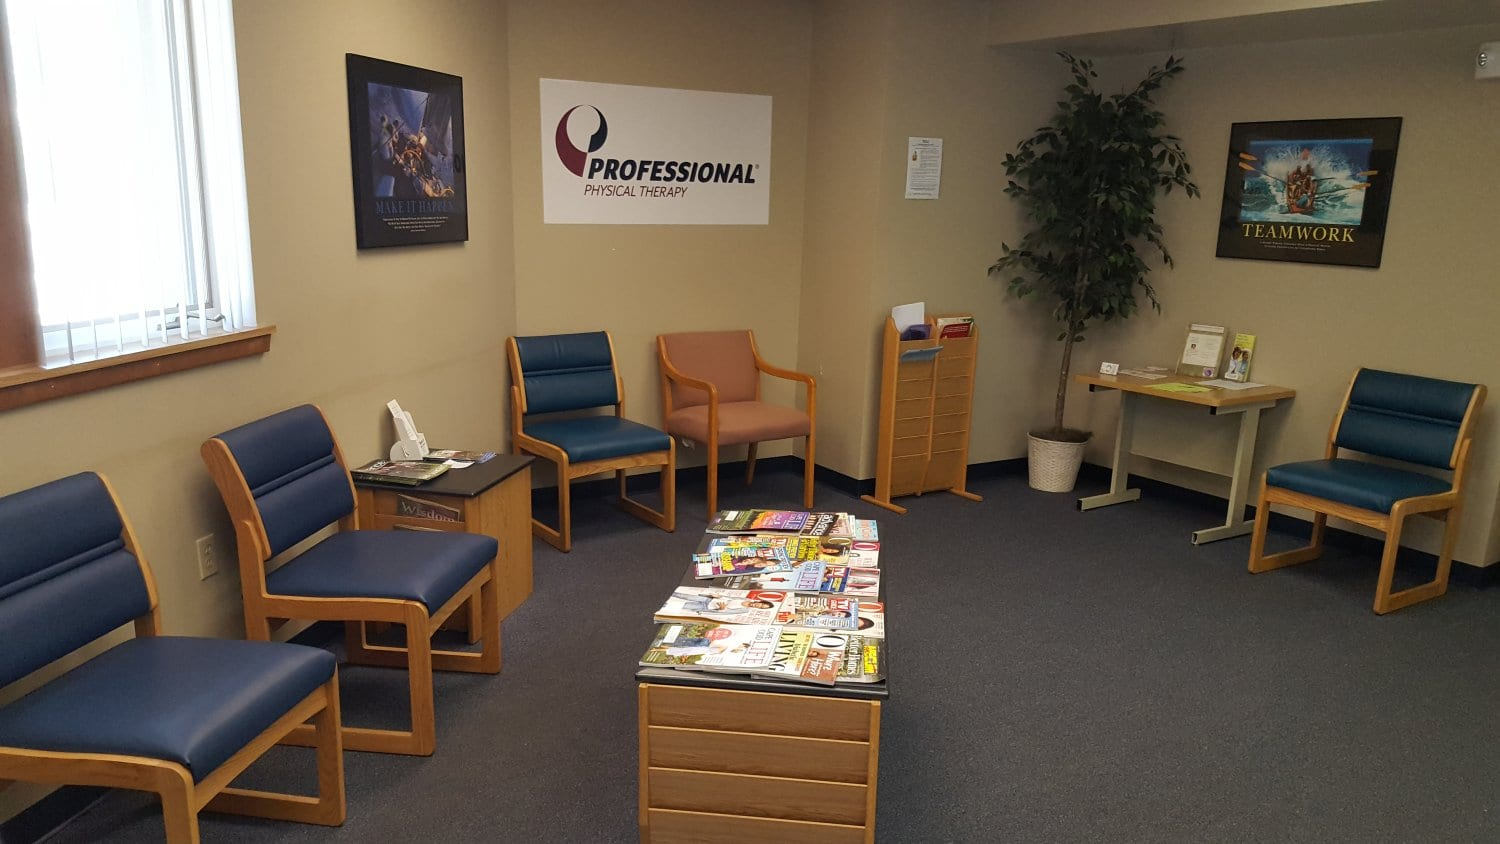 A photo of the waiting area at our physical therapy clinic in Marshfield, Massachusetts. There is a motivational sign for teamwork on the wall.